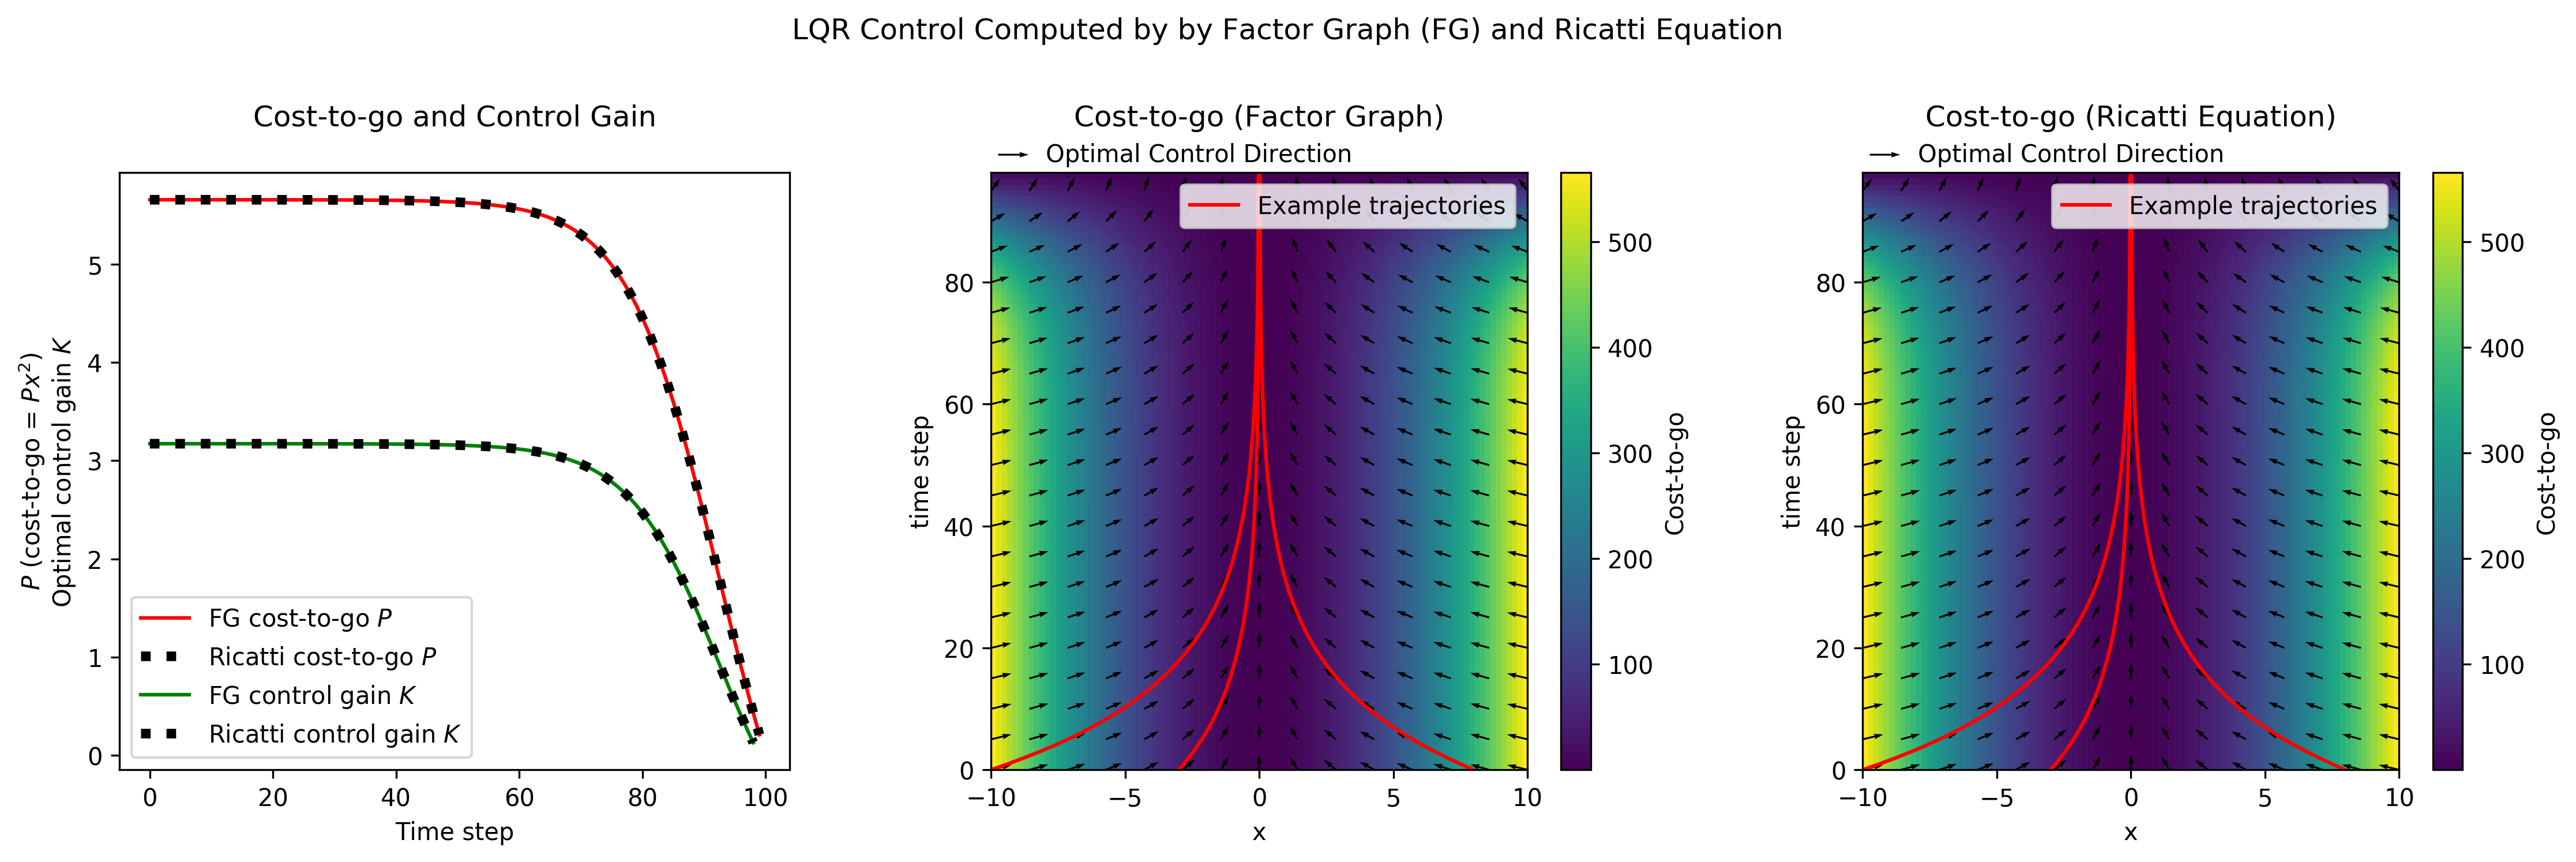 Comparison between LQR control as solved by factor graphs and by the Ricatti Equation. (they are the same)